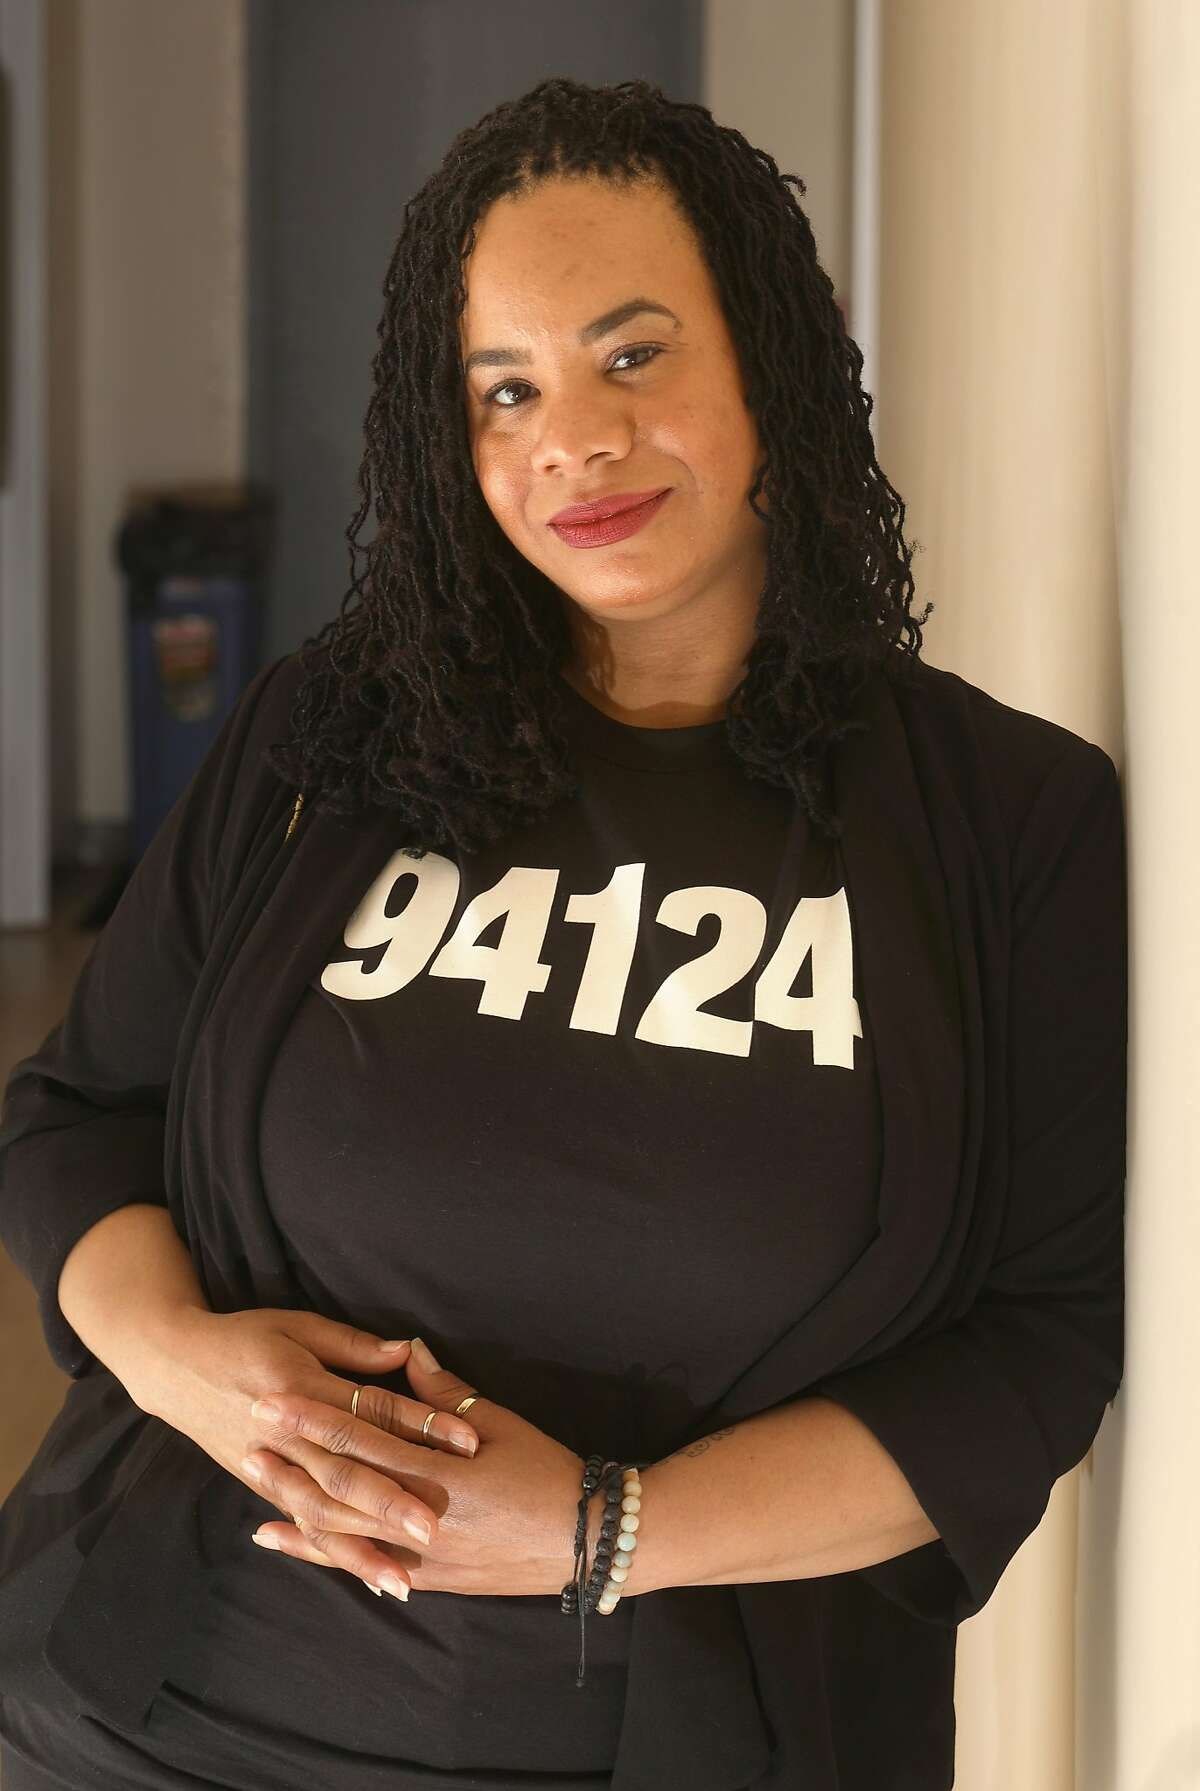 Marna Armstead has been working as a doula for 13 years on Friday, March 29, 2019, in San Francisco, Calif. Last year she created a nonprofit called SisterWeb to train more doulas of color to work in her new Bayview neighborhood office.